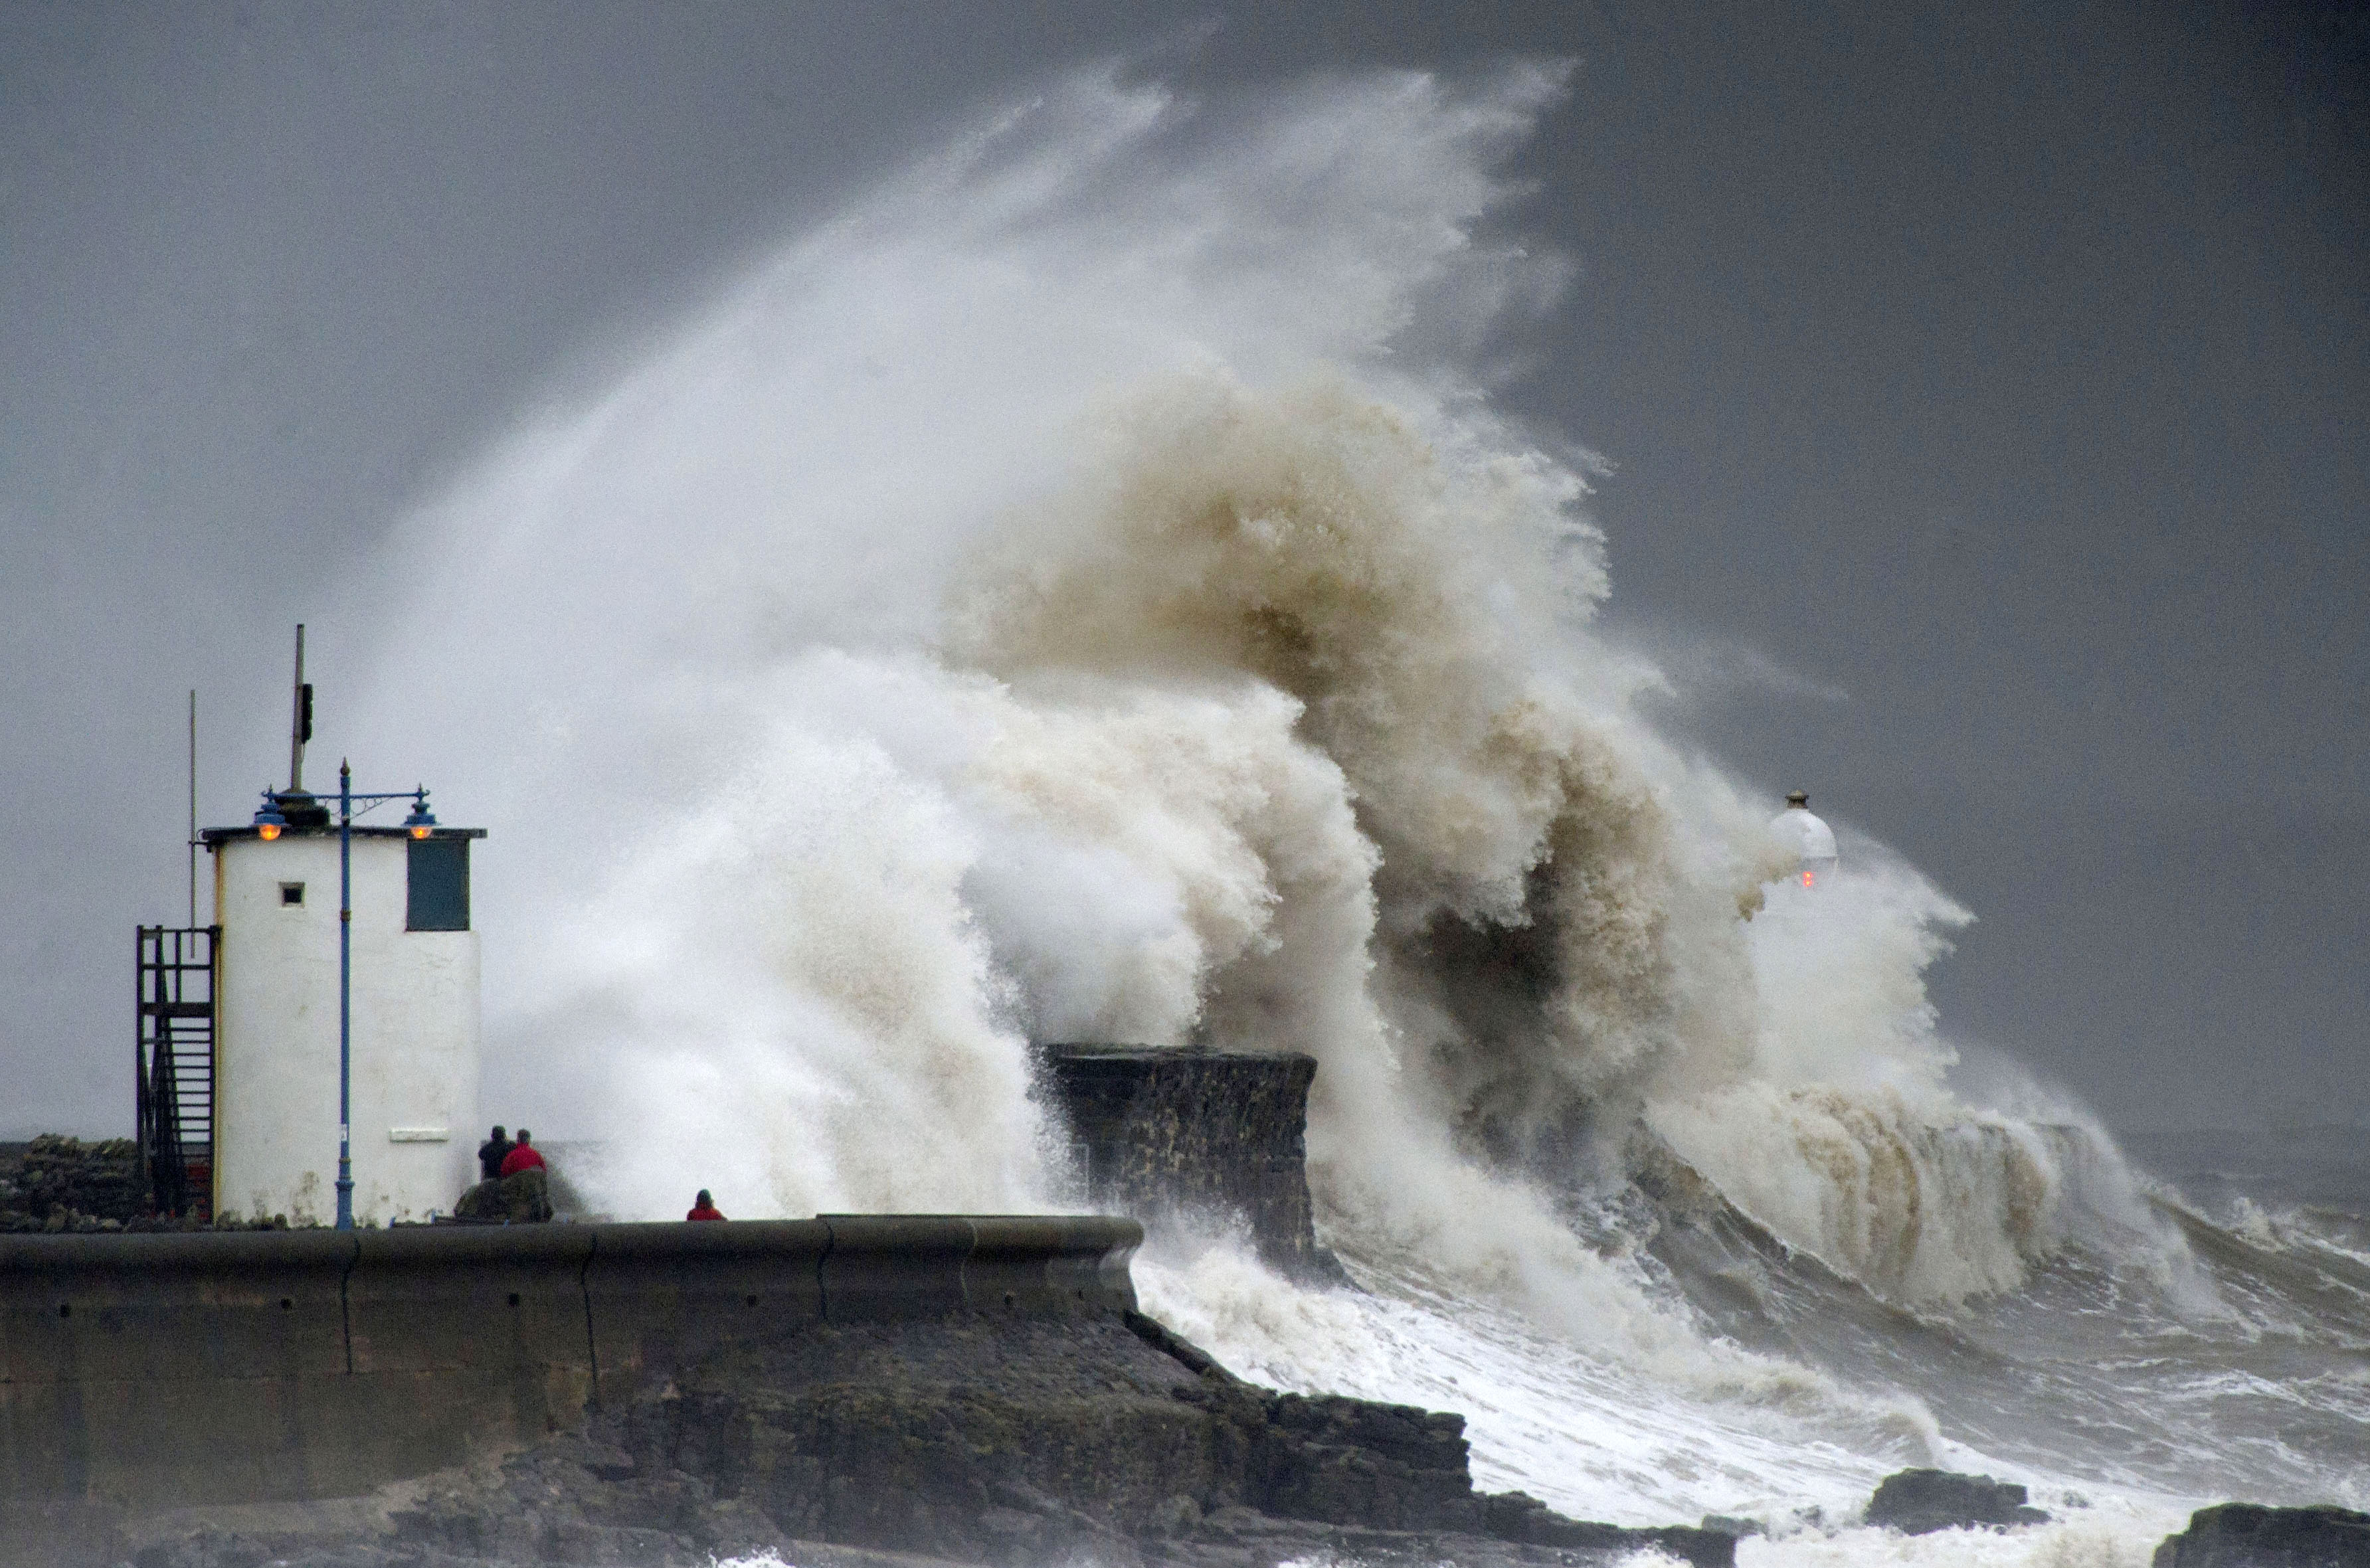 Storms, UK weather